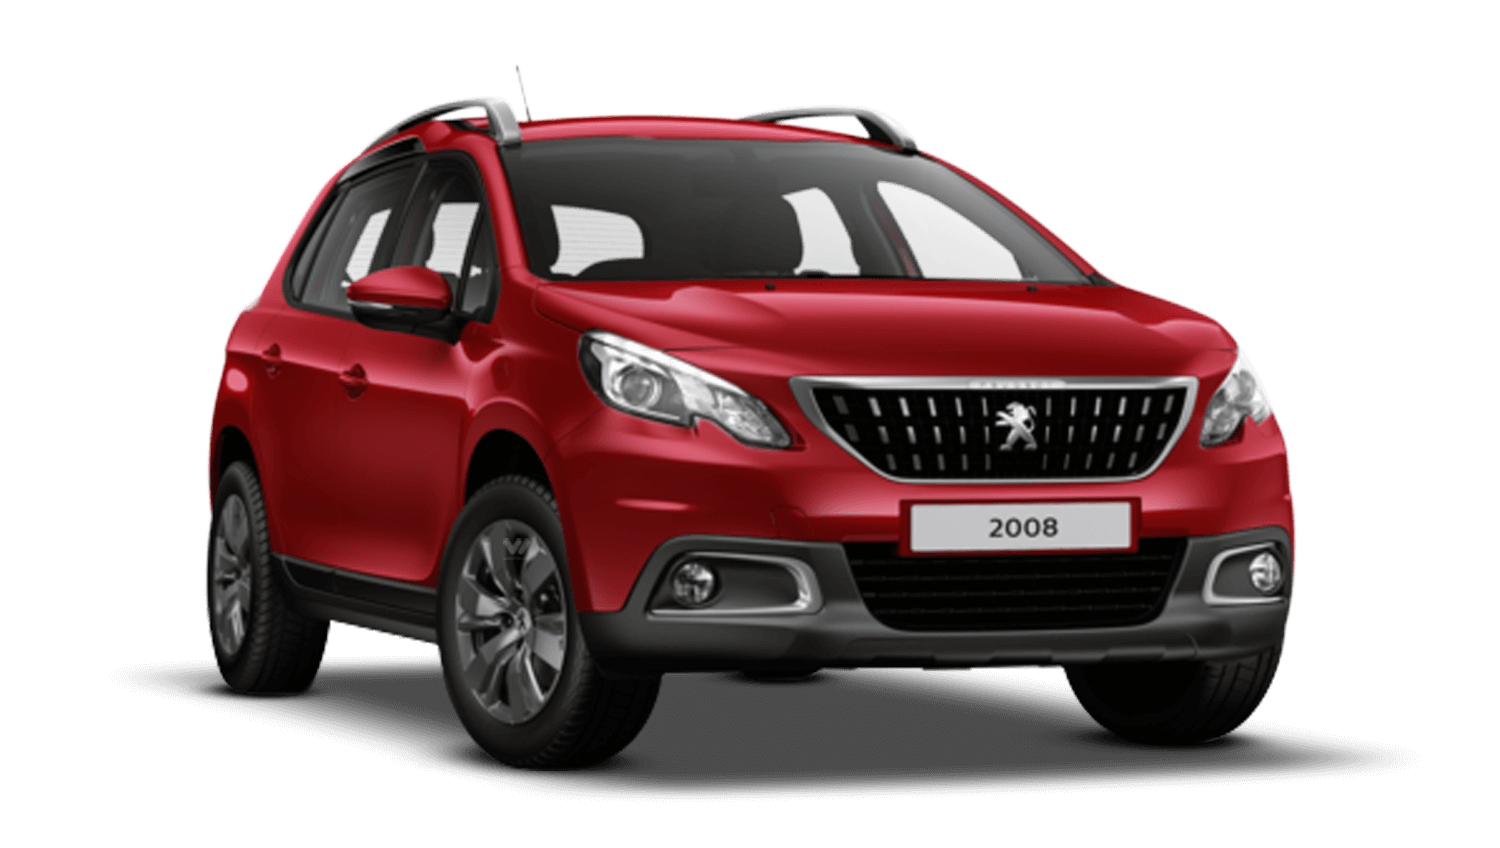 Ultimate Red Peugeot 2008 Suv